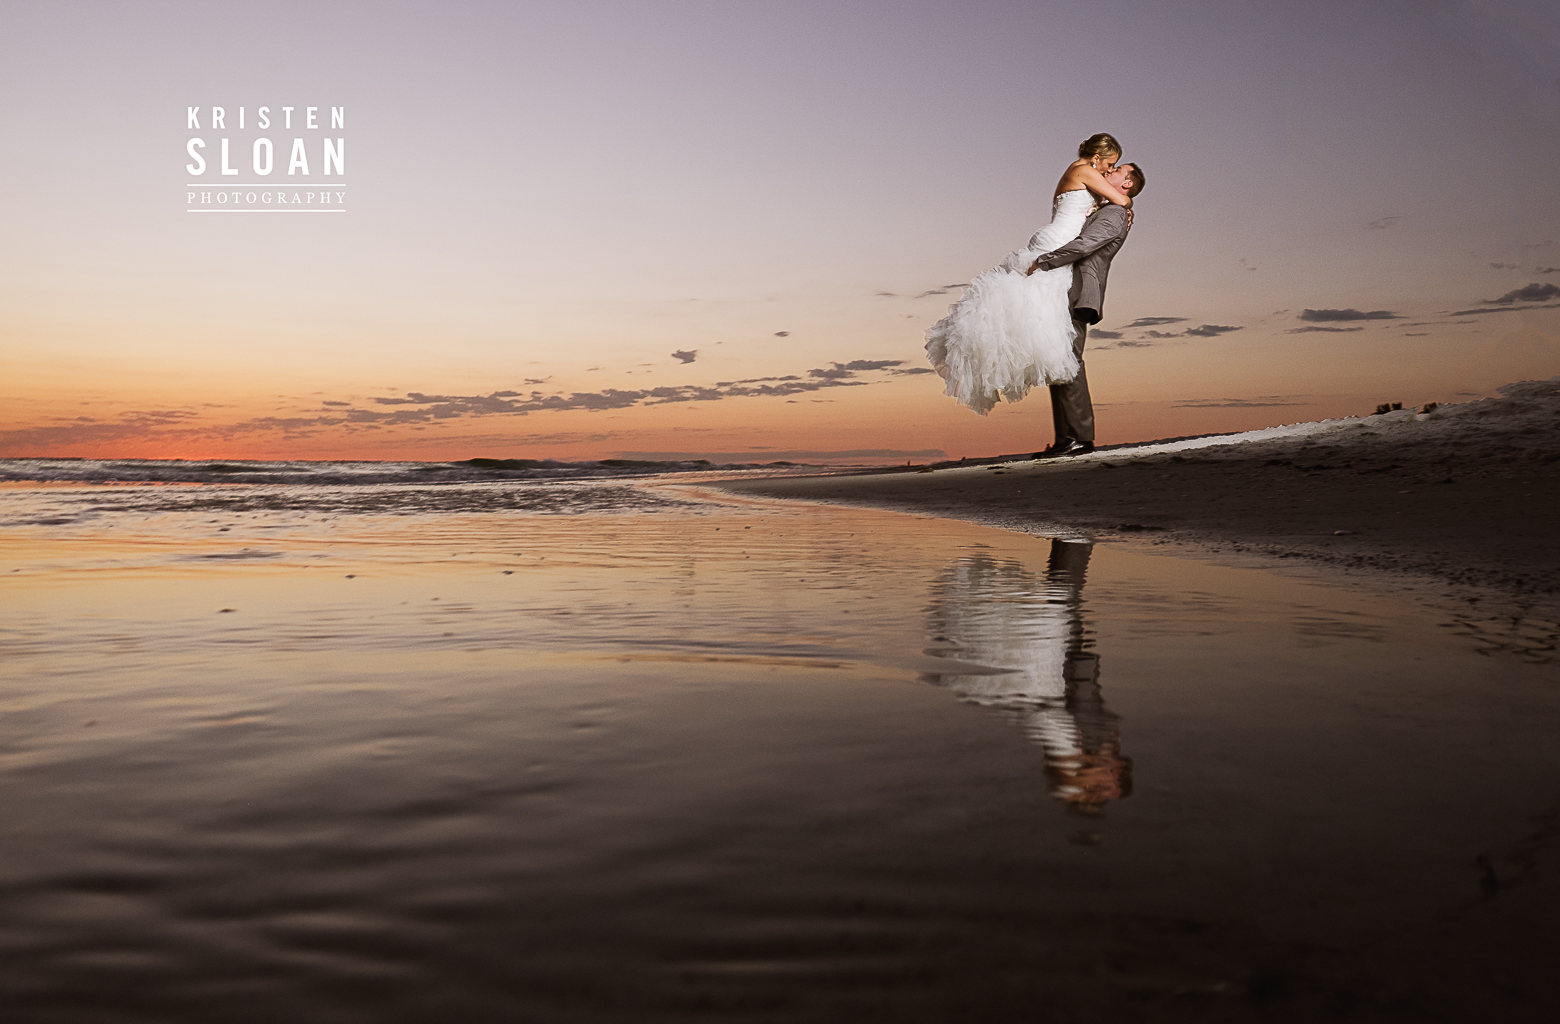 Anna Maria Island Florida Beach Wedding Photographer Kristen Sloan, Sandbar Restaurant Wedding Anna Maria Island, Florida Beach Wedding Sunset Bride and Groom